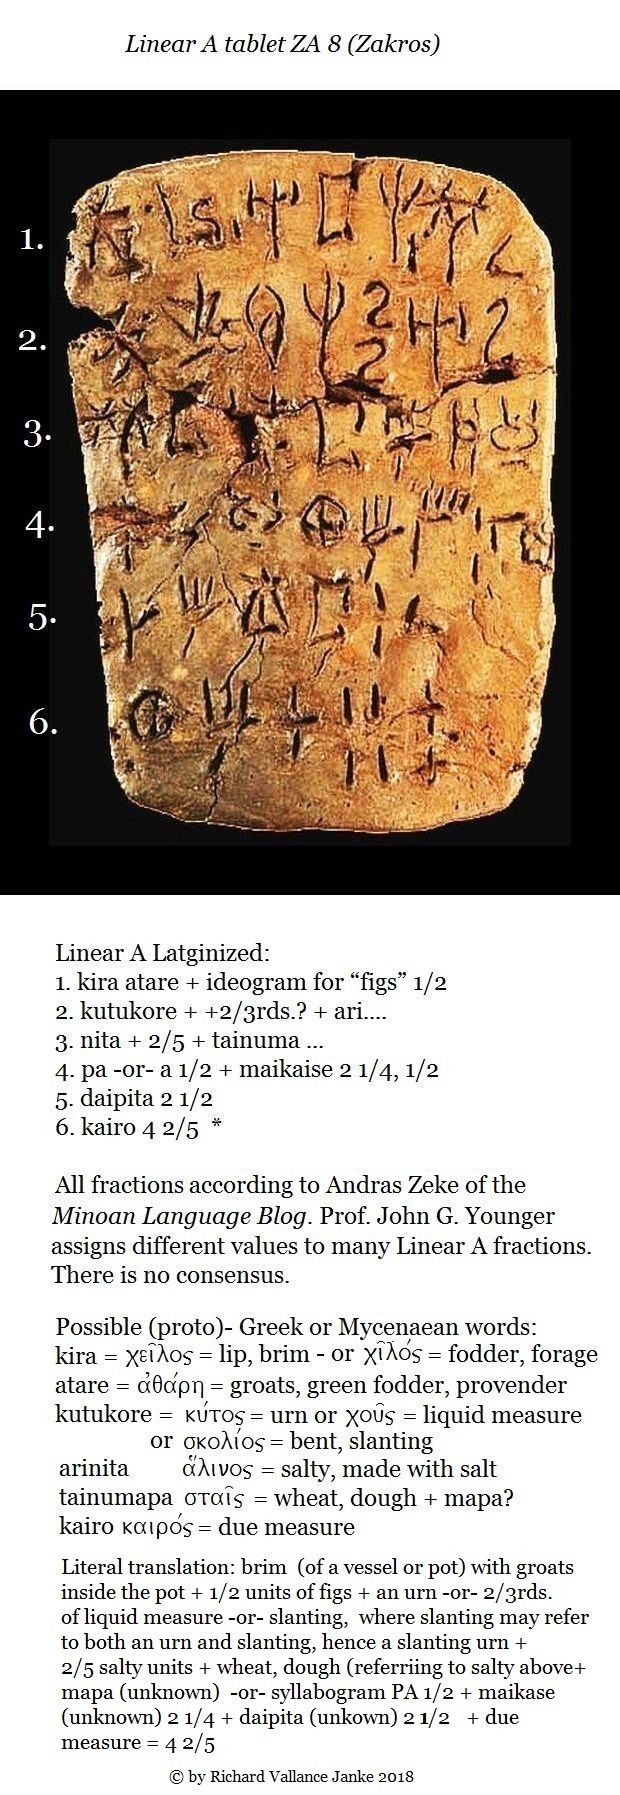 Linear A tablet ZA 8 Zakros